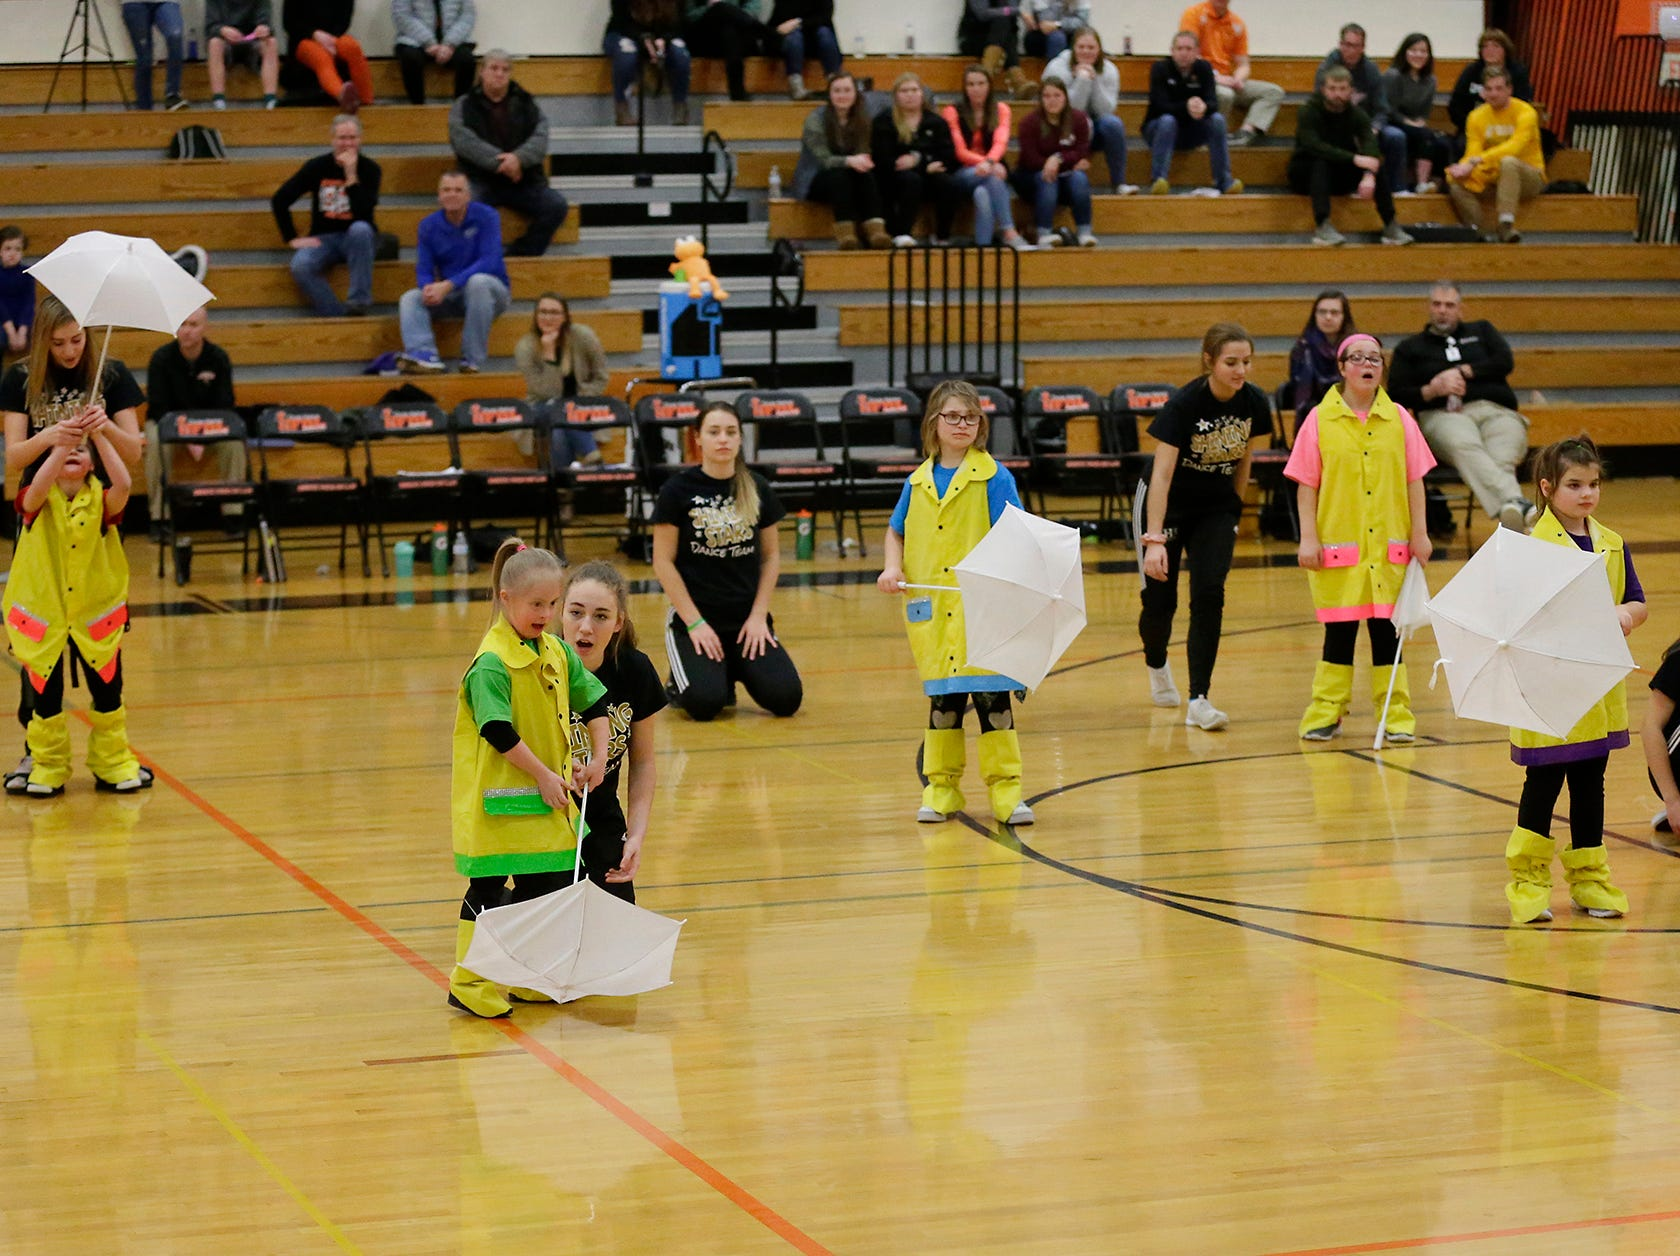 The Shining Stars Dance Team perform during halftime of the North Fond du Lac High School vs. St. Mary's Springs Academy girls basketball game Jan. 4 at North Fond du Lac High School.